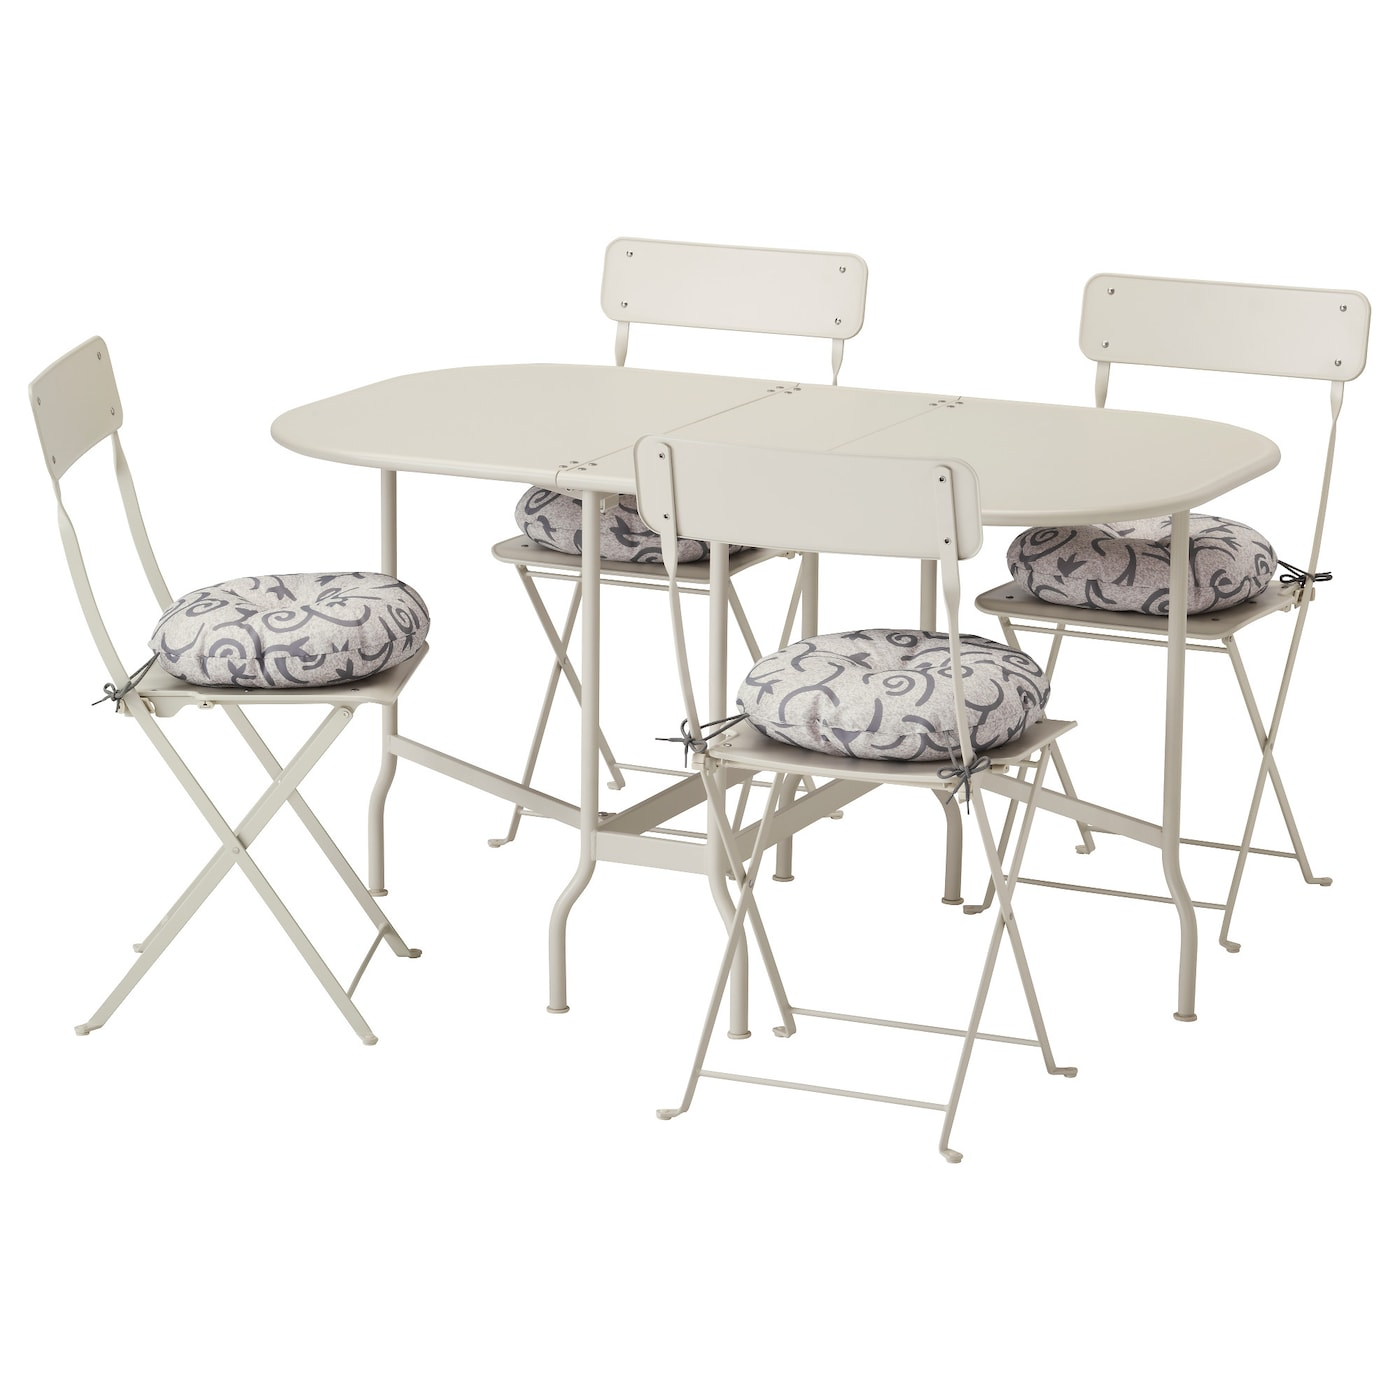 SALTHOLMEN Table 4 folding chairs outdoor Beige stegön beige IKEA